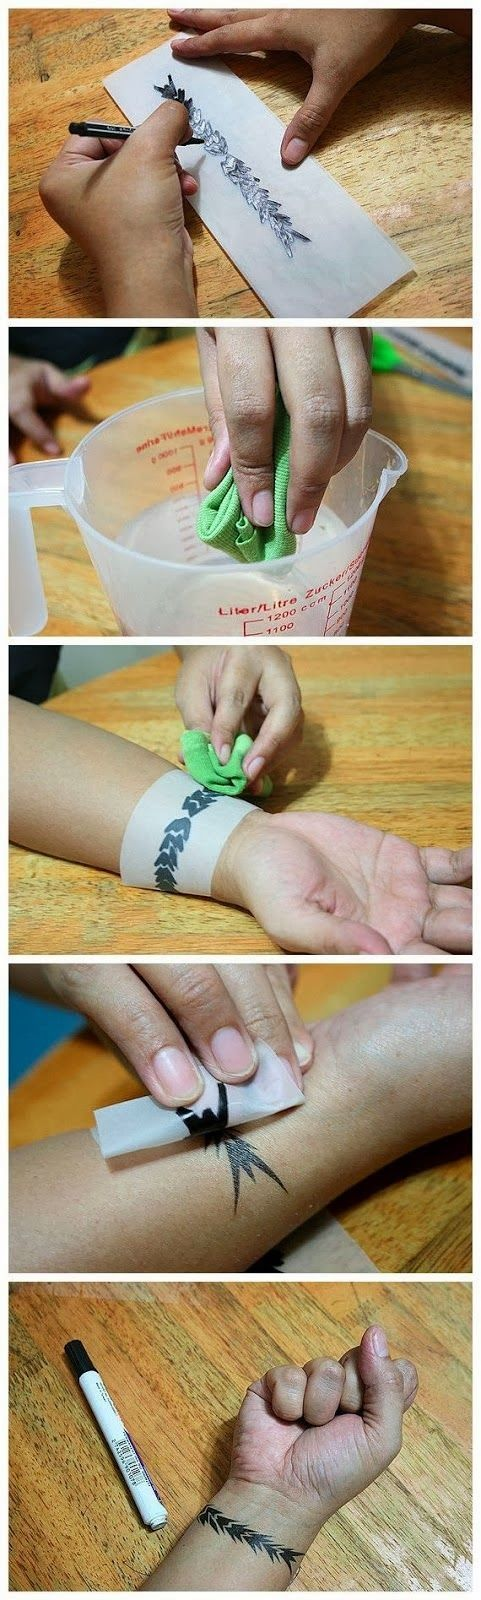 How to Create Your Own Temporary Tattoo. I wonder if this actually works or is a...